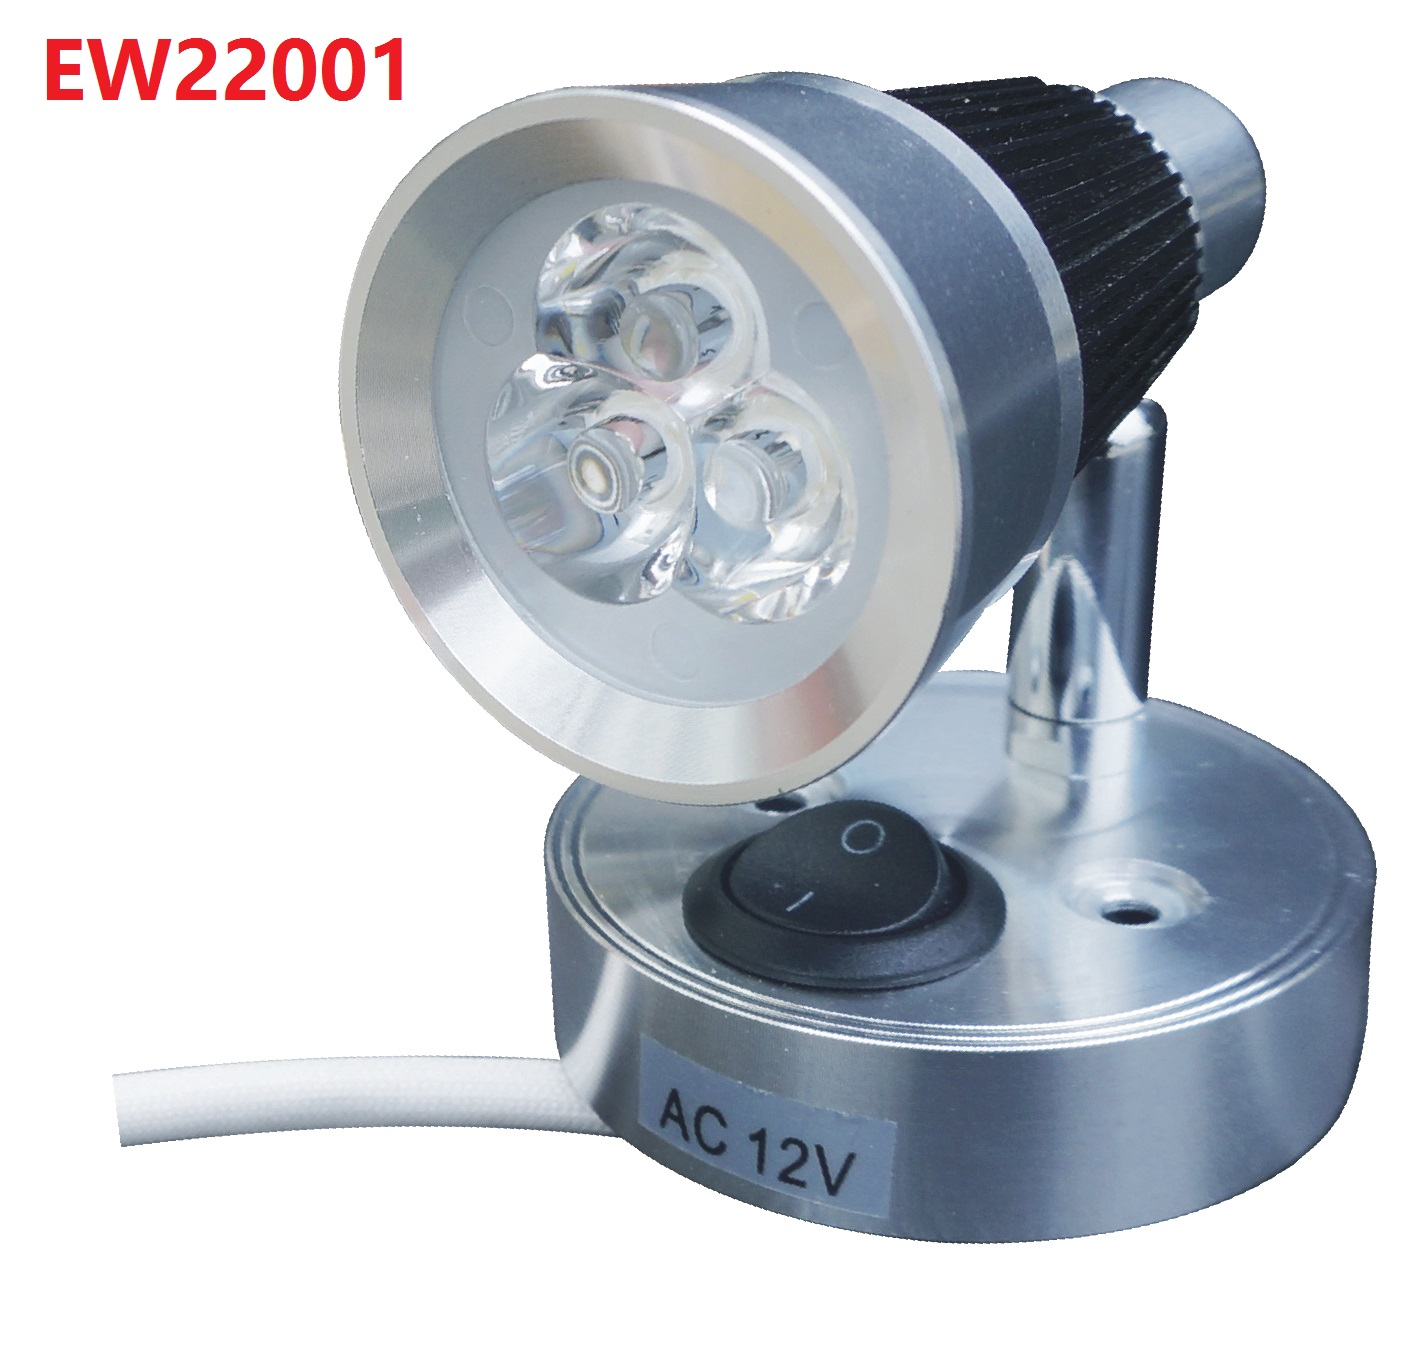 EW22001 Model AC12V Aluminum Led Reading Light